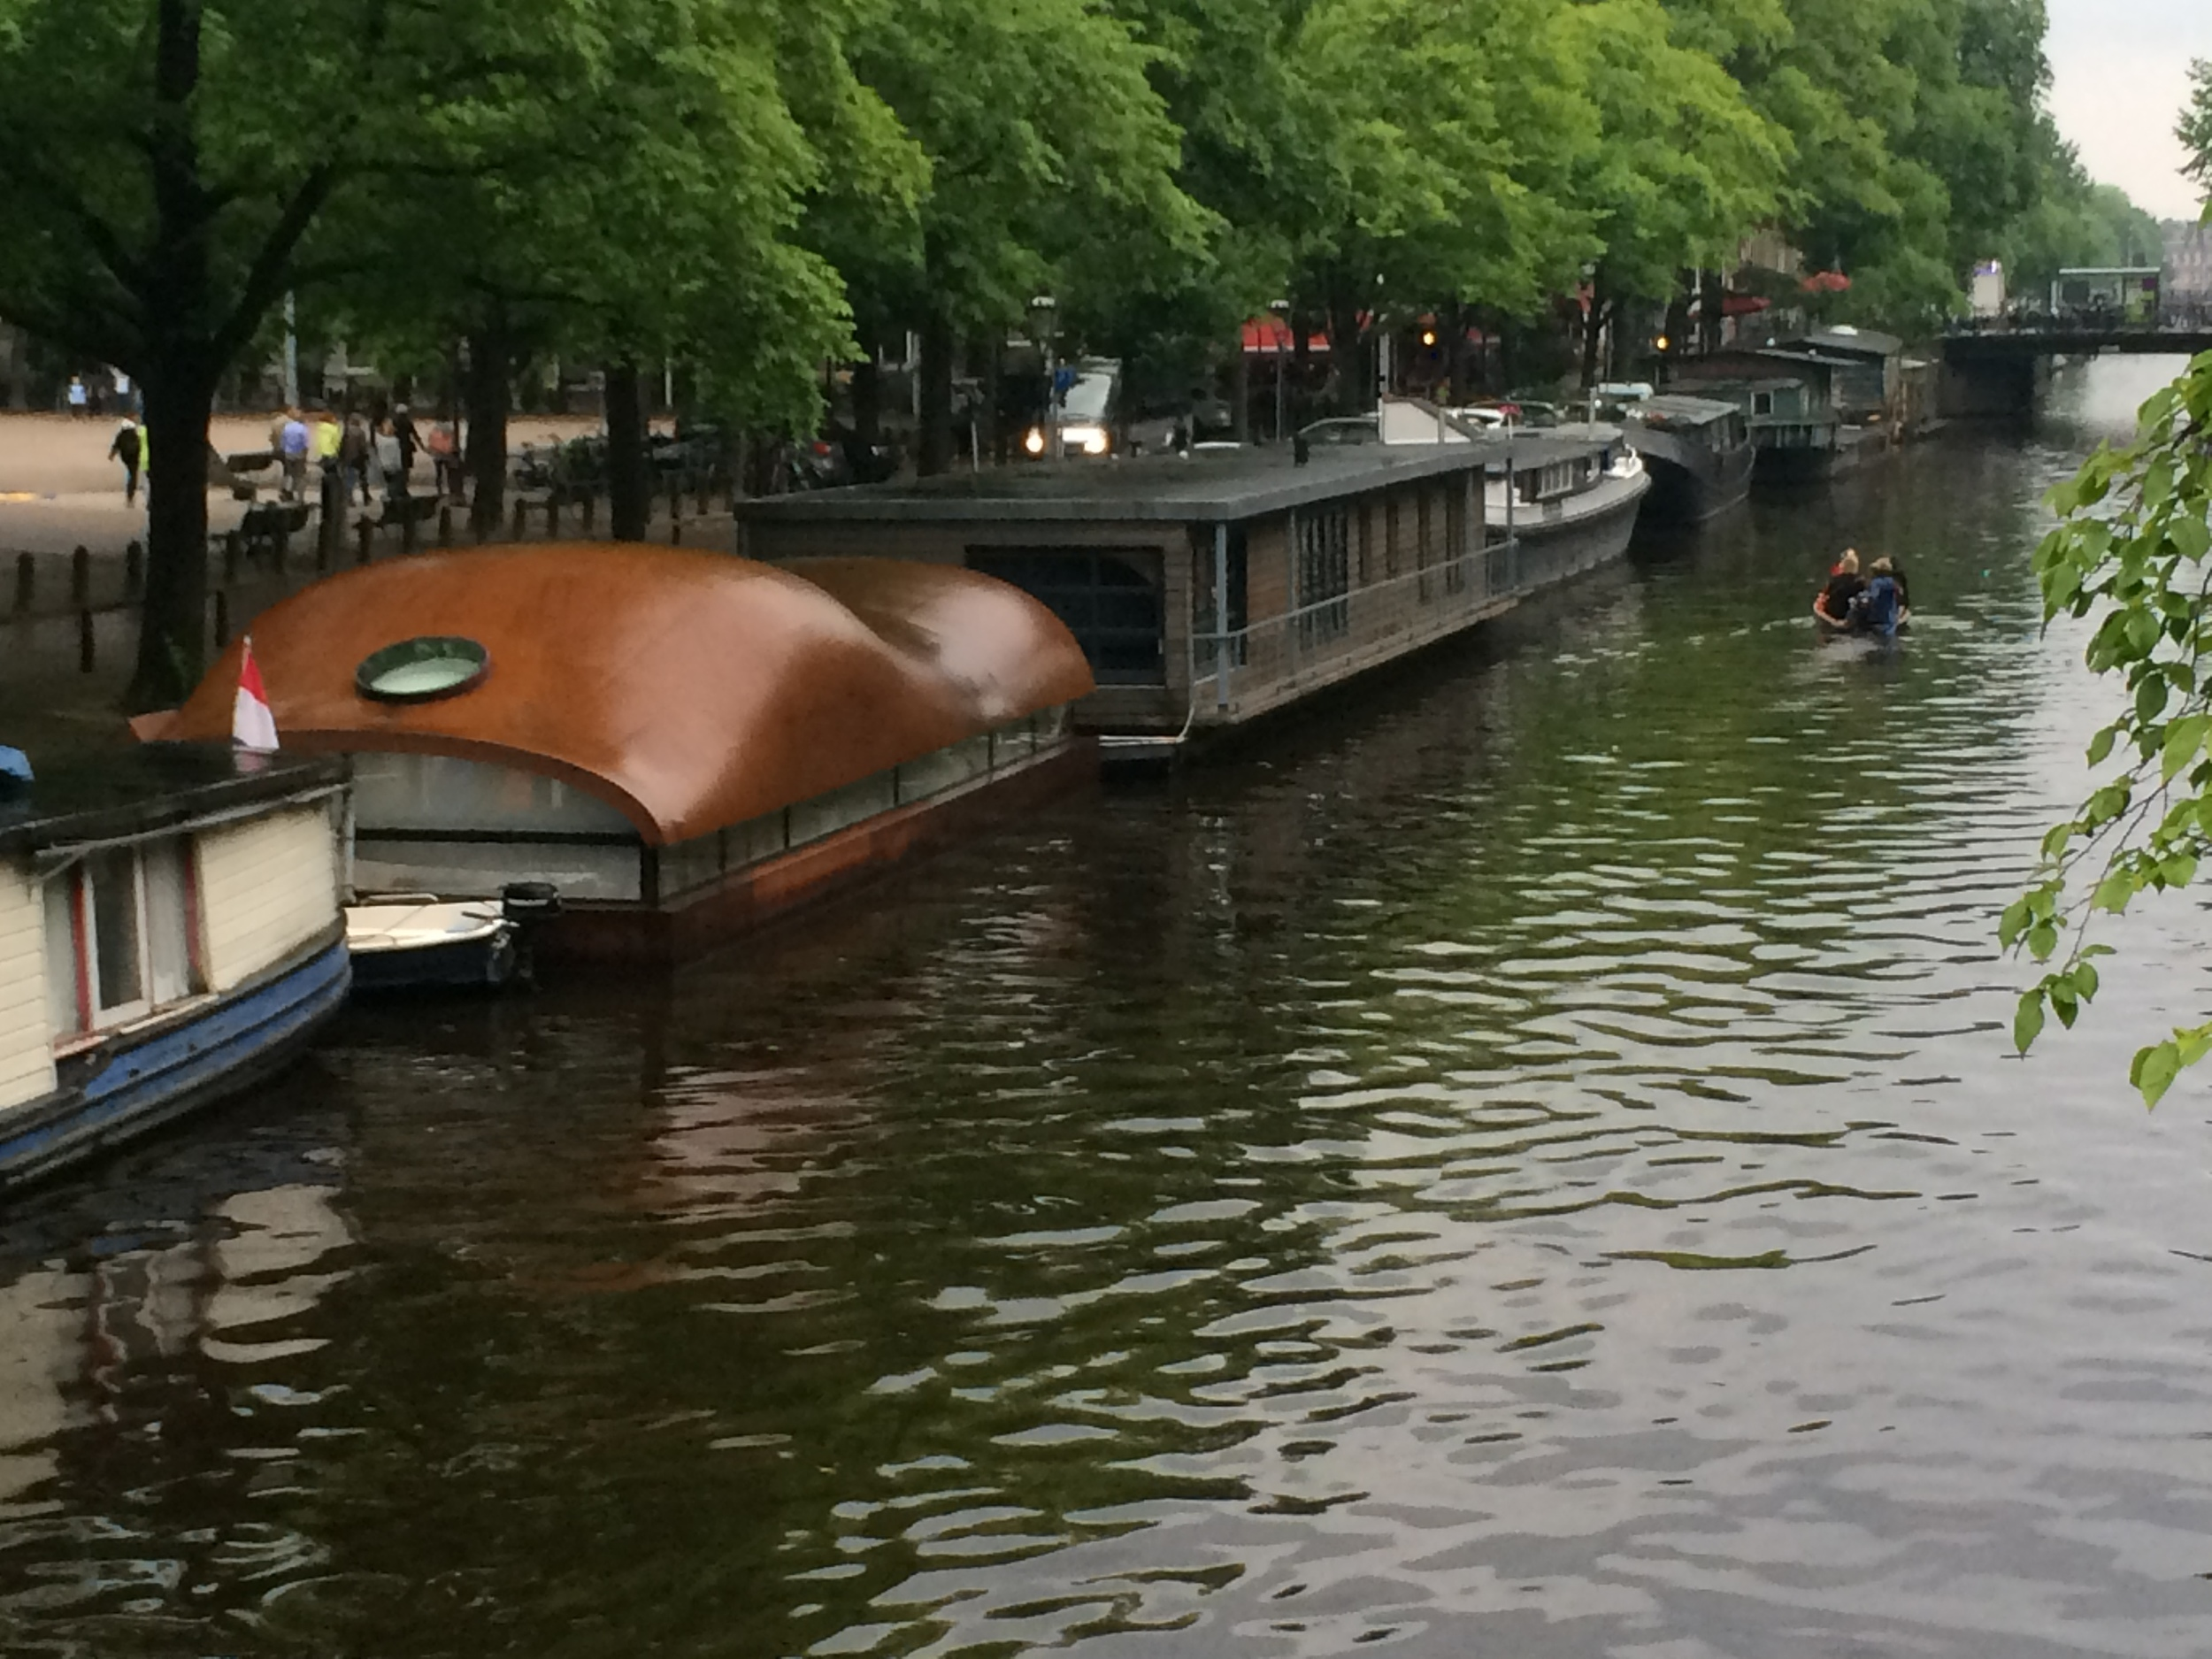 Houseboats on the Canal Prinsengracht